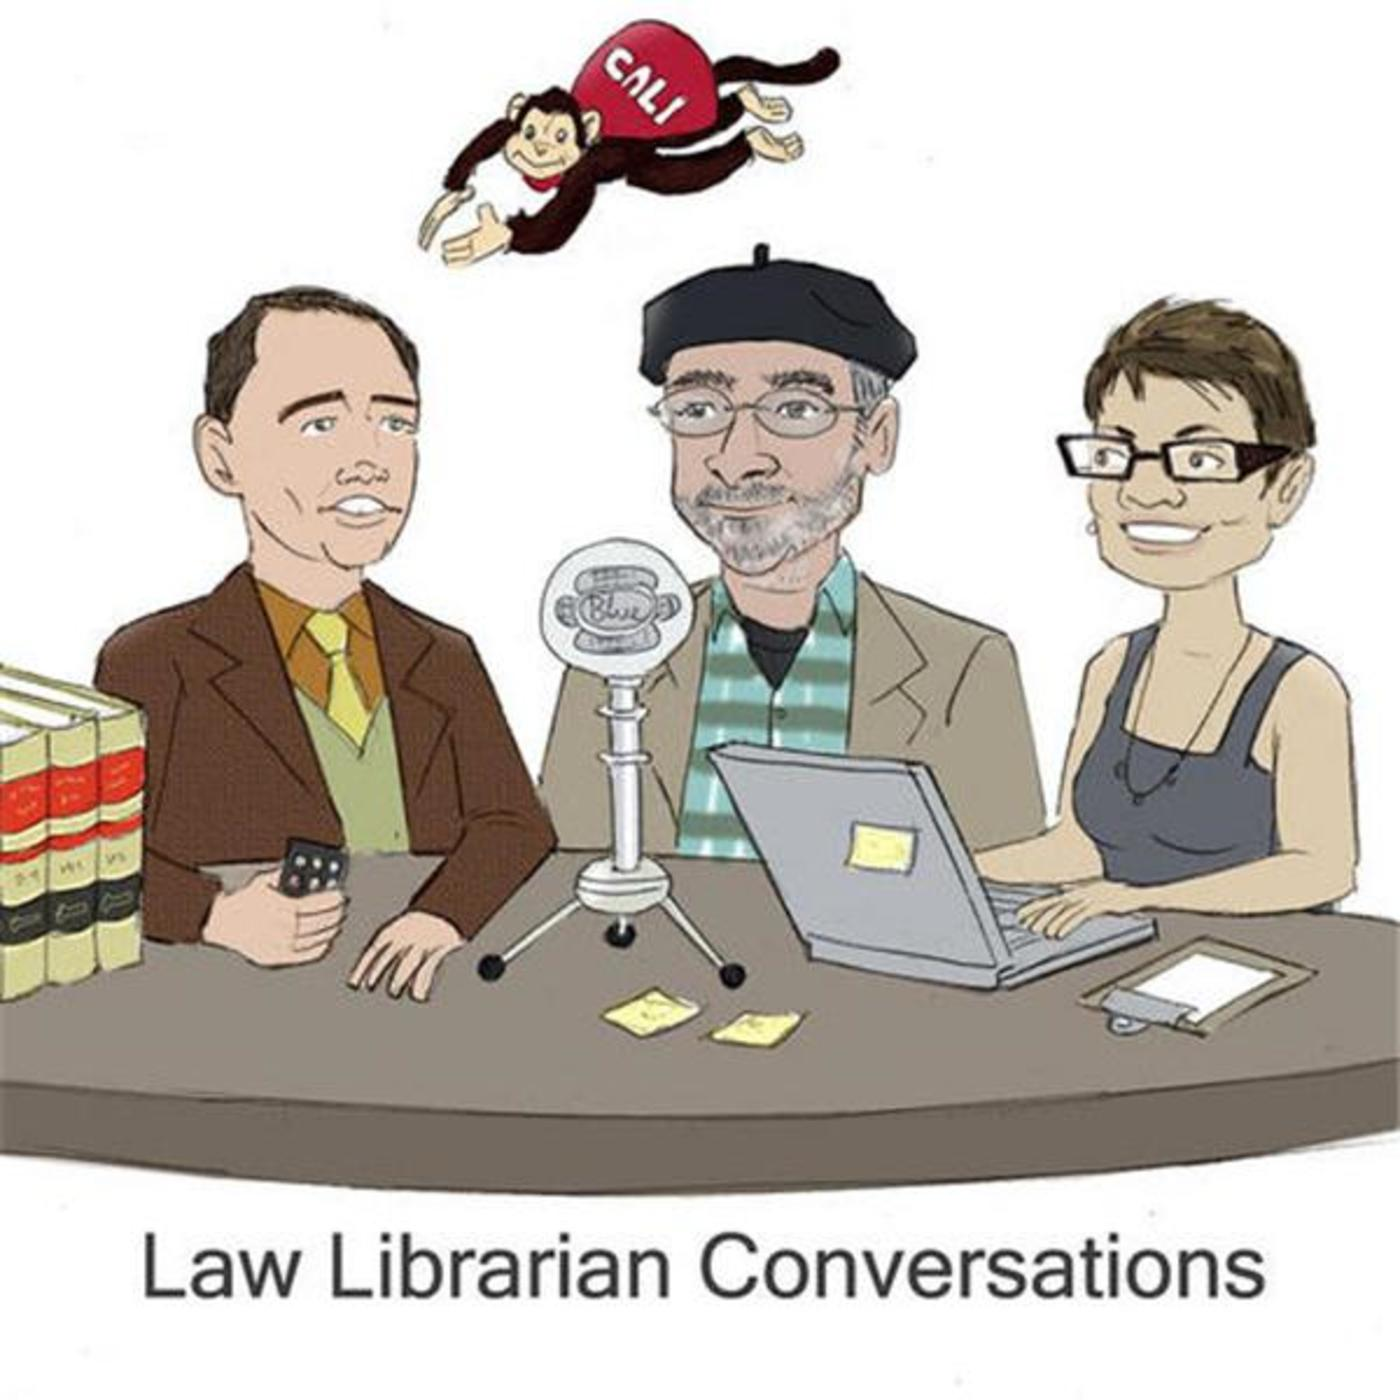 Law Librarian Conversations